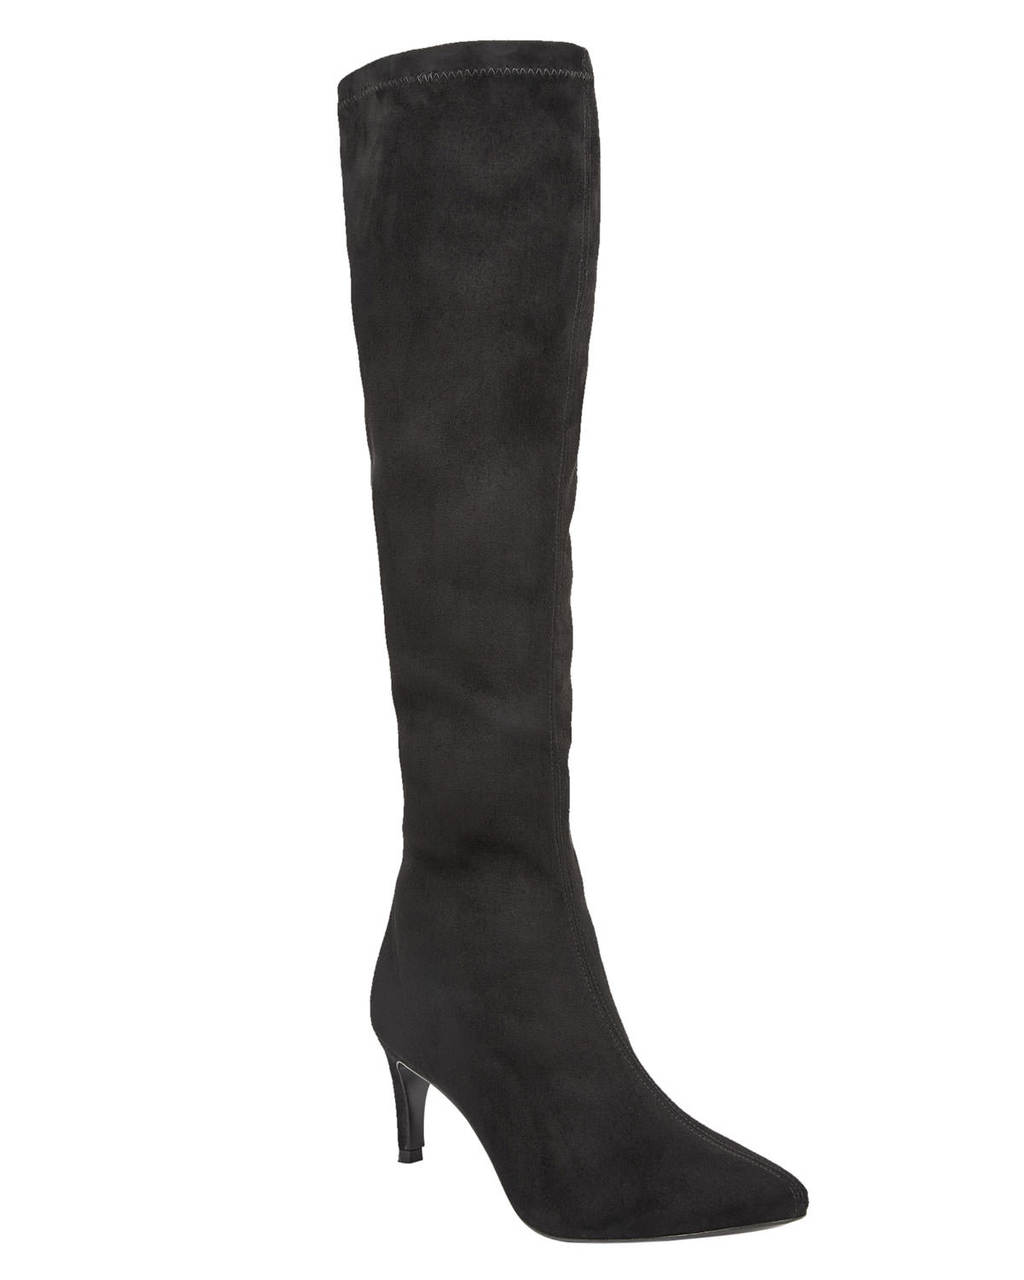 Hannah Stretch Boot - predominant colour: black; material: suede; heel height: high; heel: stiletto; toe: pointed toe; boot length: over the knee; style: standard; finish: plain; pattern: plain; occasions: creative work; season: s/s 2016; wardrobe: investment